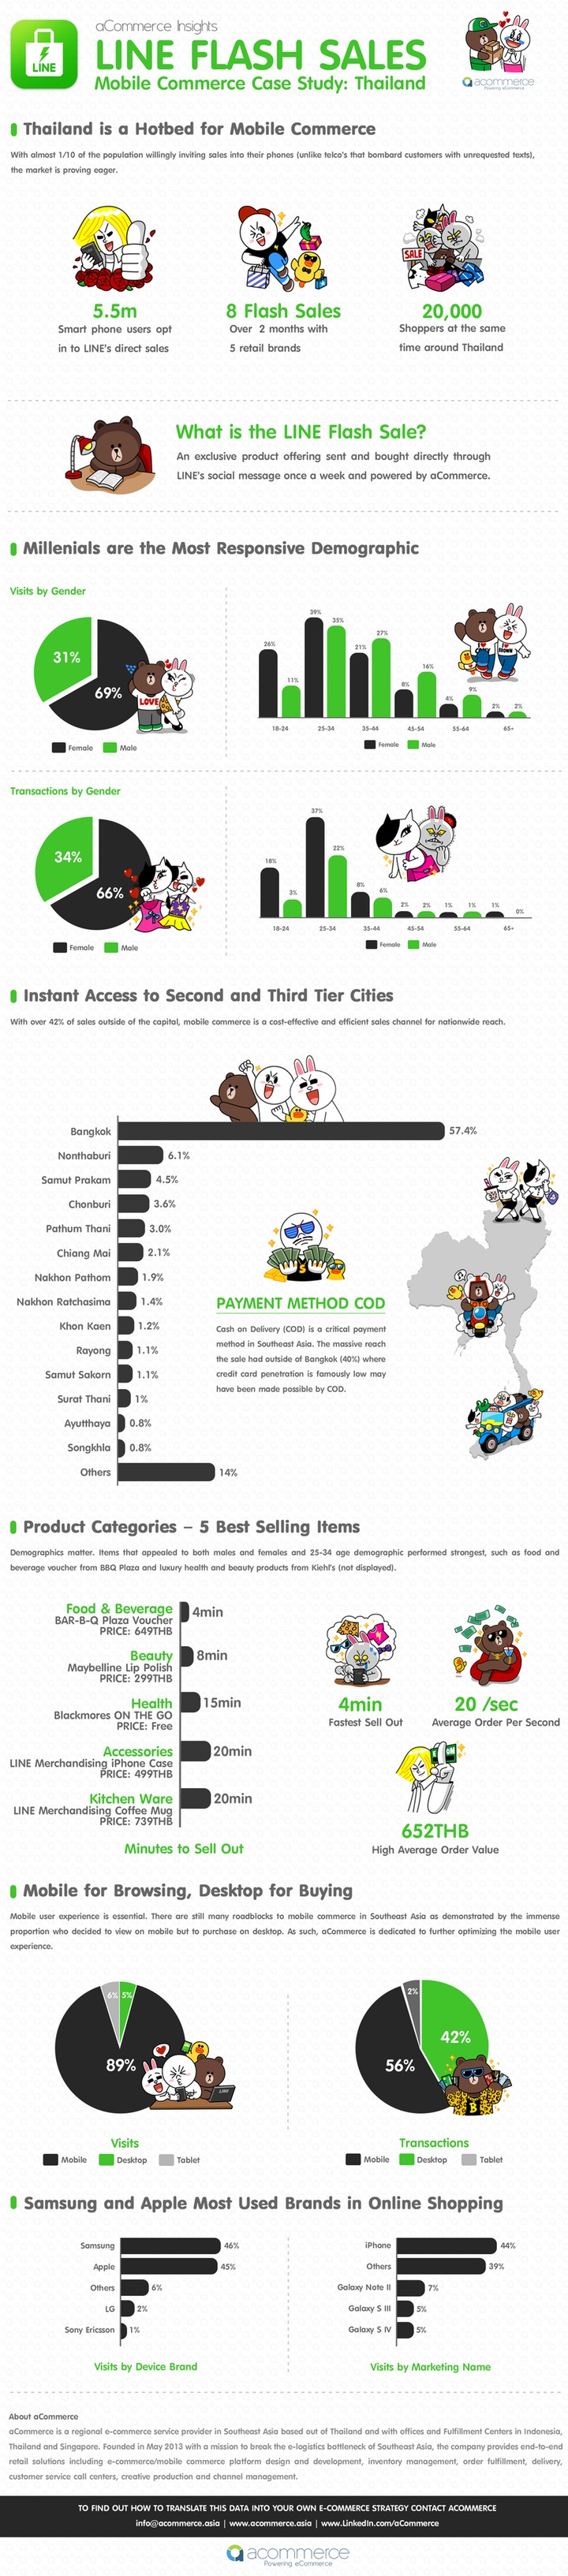 Line pulled in 5.5 million interested shoppers for its flash sales in Thailand - INFOGRAPHIC